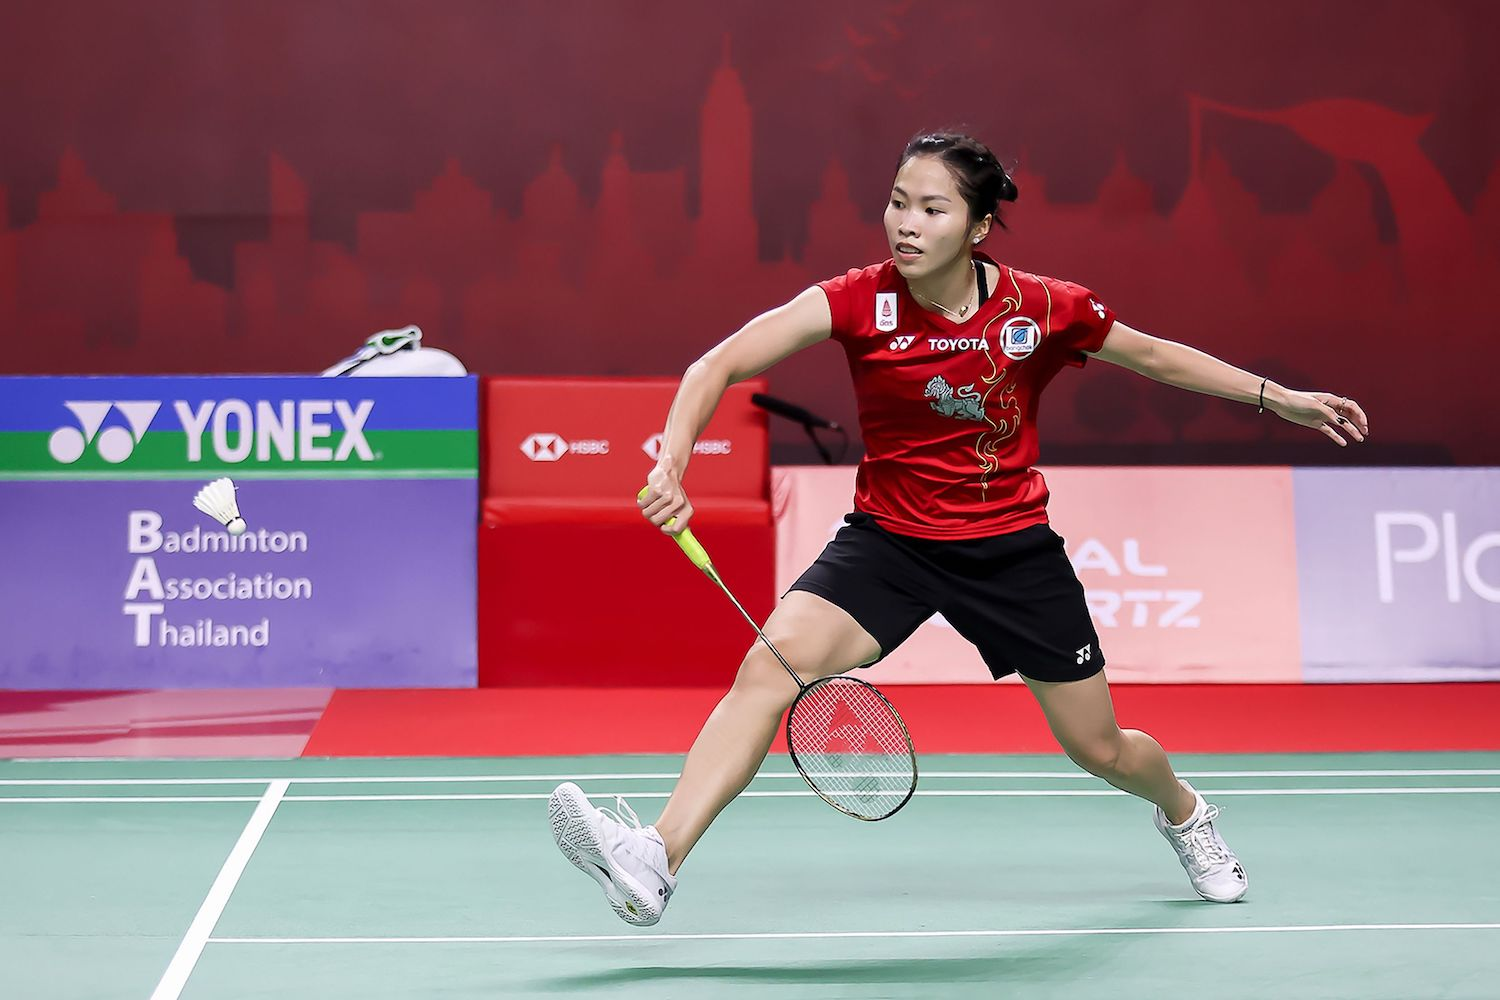 Ratchanok Intanon plays a shot during her second-round match against Germany's Yvonne Li at the Thailand Open in Bangkok on Thursday. Her run at the event ended on Friday with a loss to An Se-young of South Korea. (Badminton Association of Thailand via AFP)